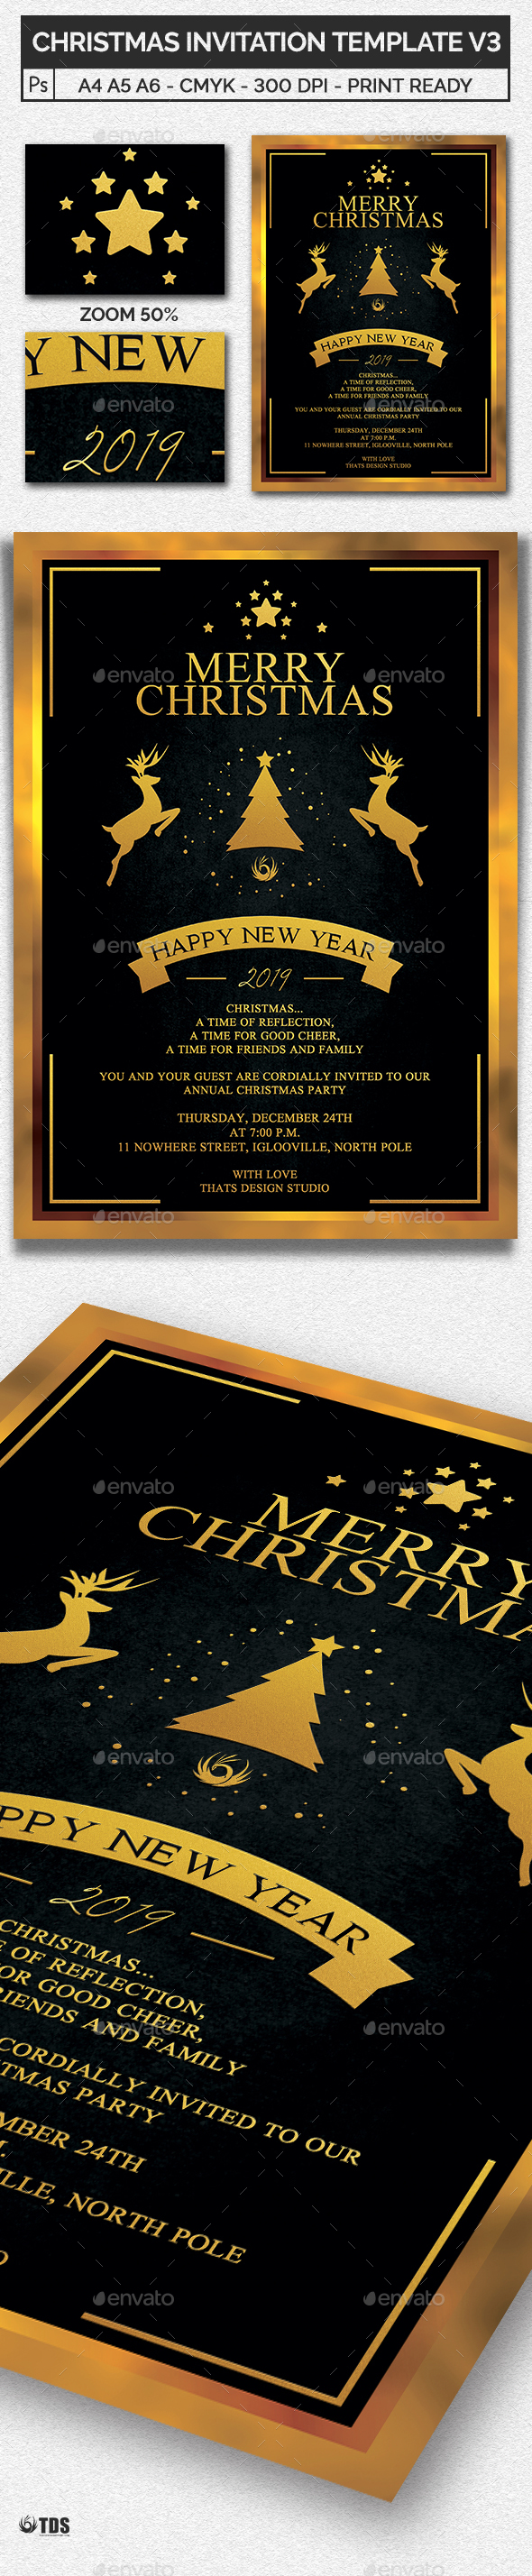 Christmas Invitation Template V3 - Invitations Cards & Invites